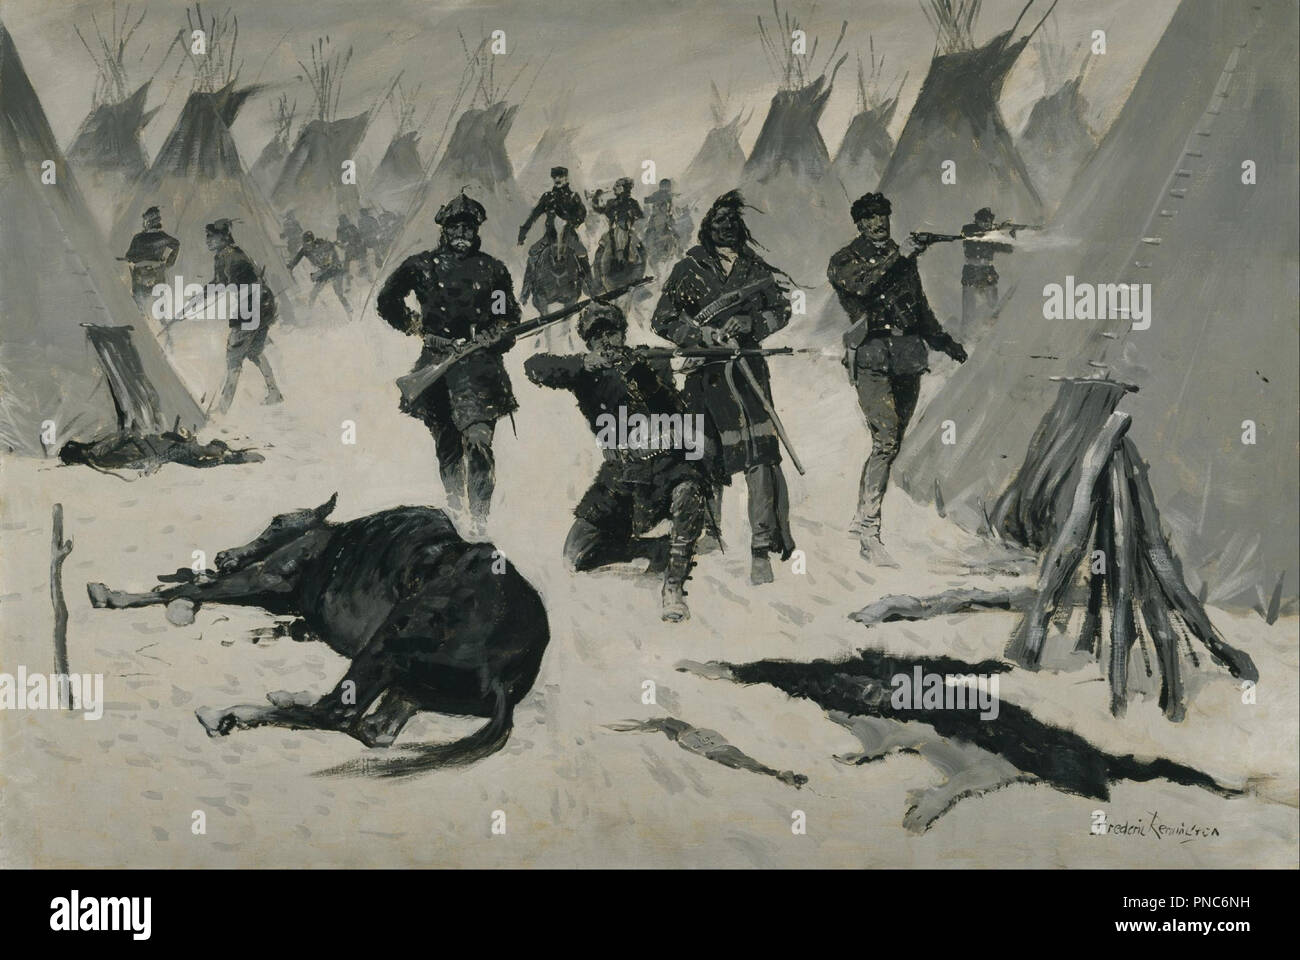 The Defeat of Crazy Horse. Date/Period: 1899/1903. Painting. Oil on canvas. Width: 101.6 cm. Height: 68.6 cm (without frame). Author: Frederic Remington. - Stock Image